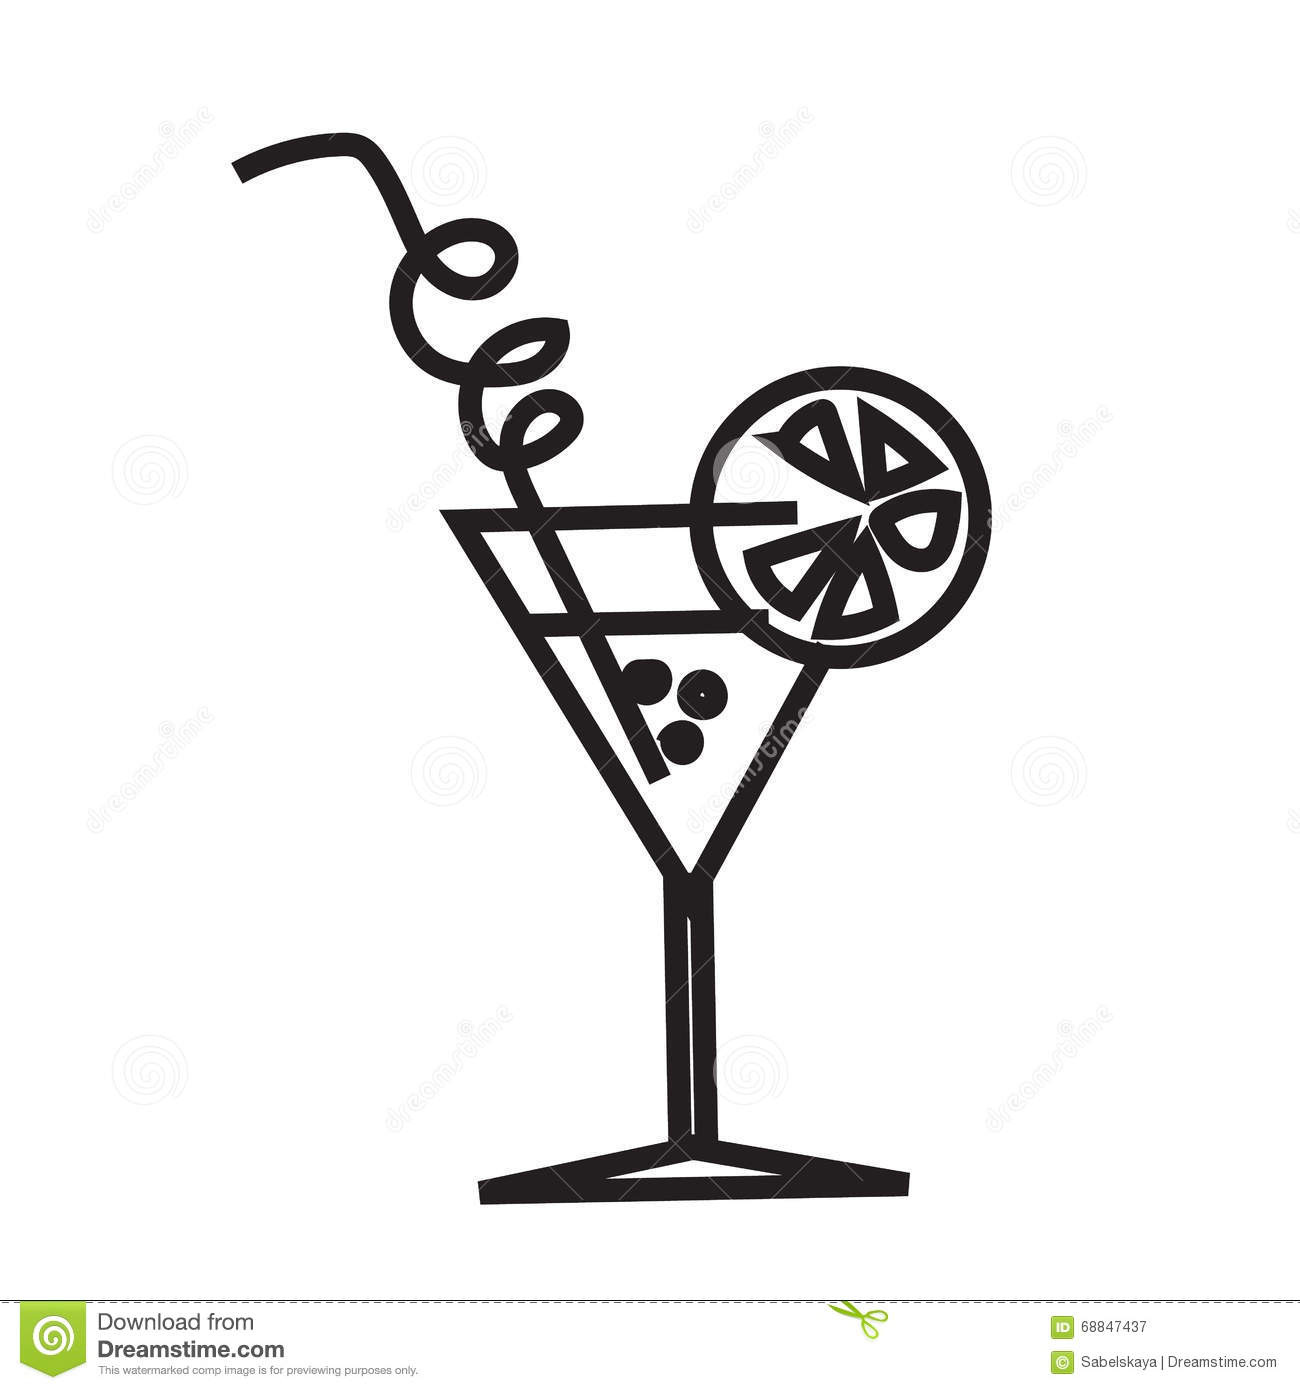 Stock Illustration Minimalist Black Cocktail Image Simple Symbol Line Style White Icon Icon Isolated Art Line Vector Image68847437 on design floor plan symbol for audio